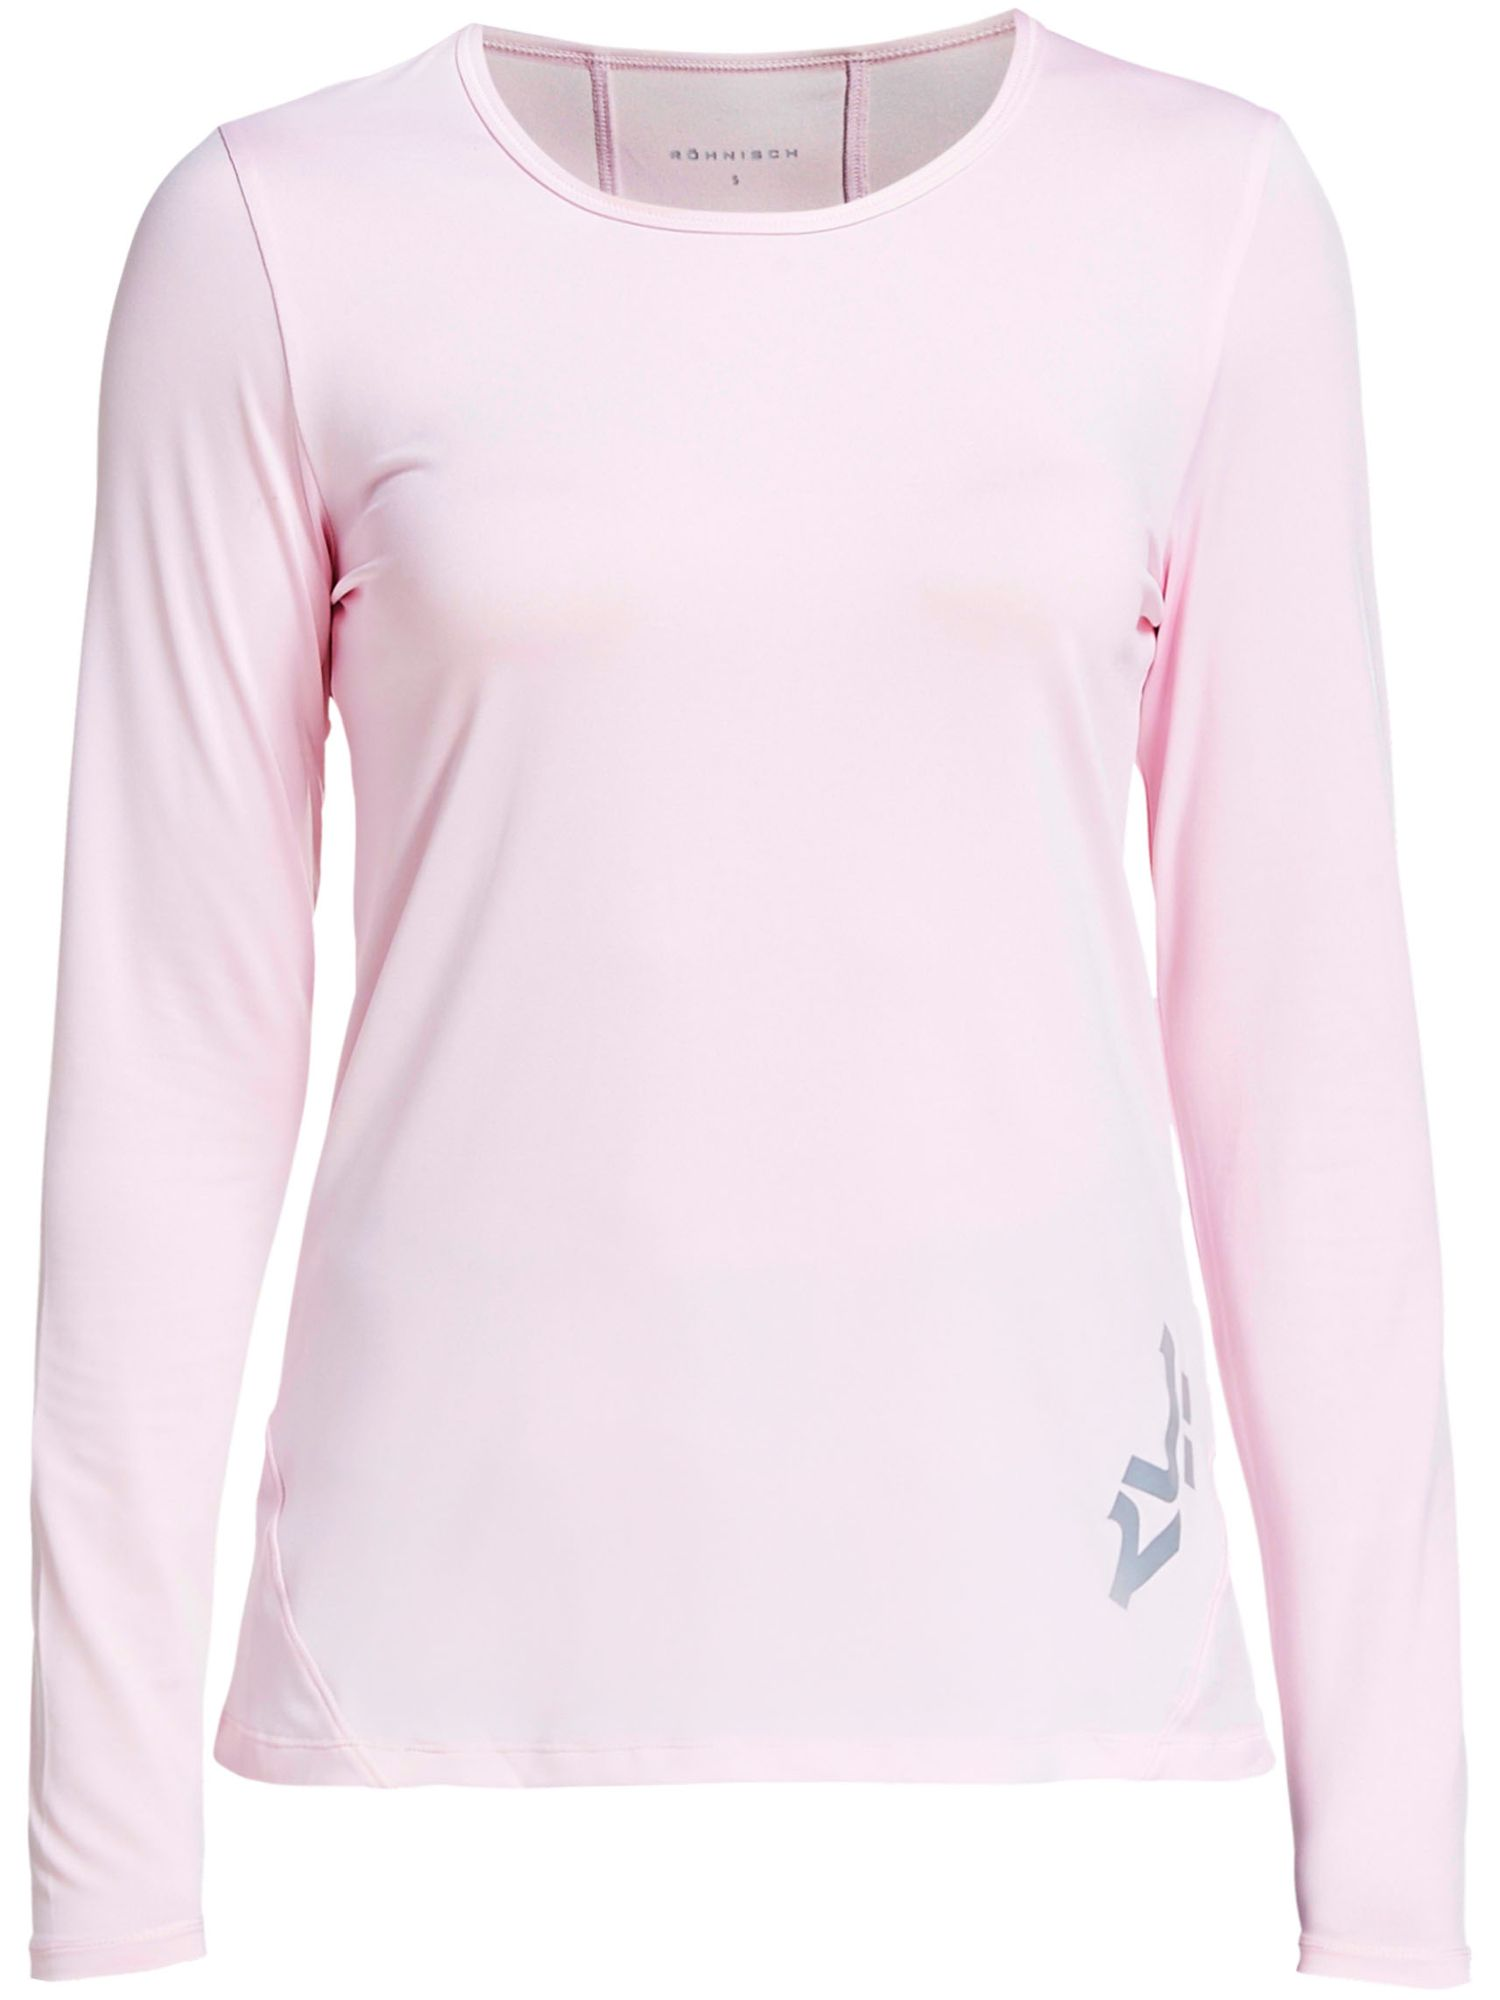 Rohnisch Genna Long Sleeved Polo, 161 Cherry Blossom